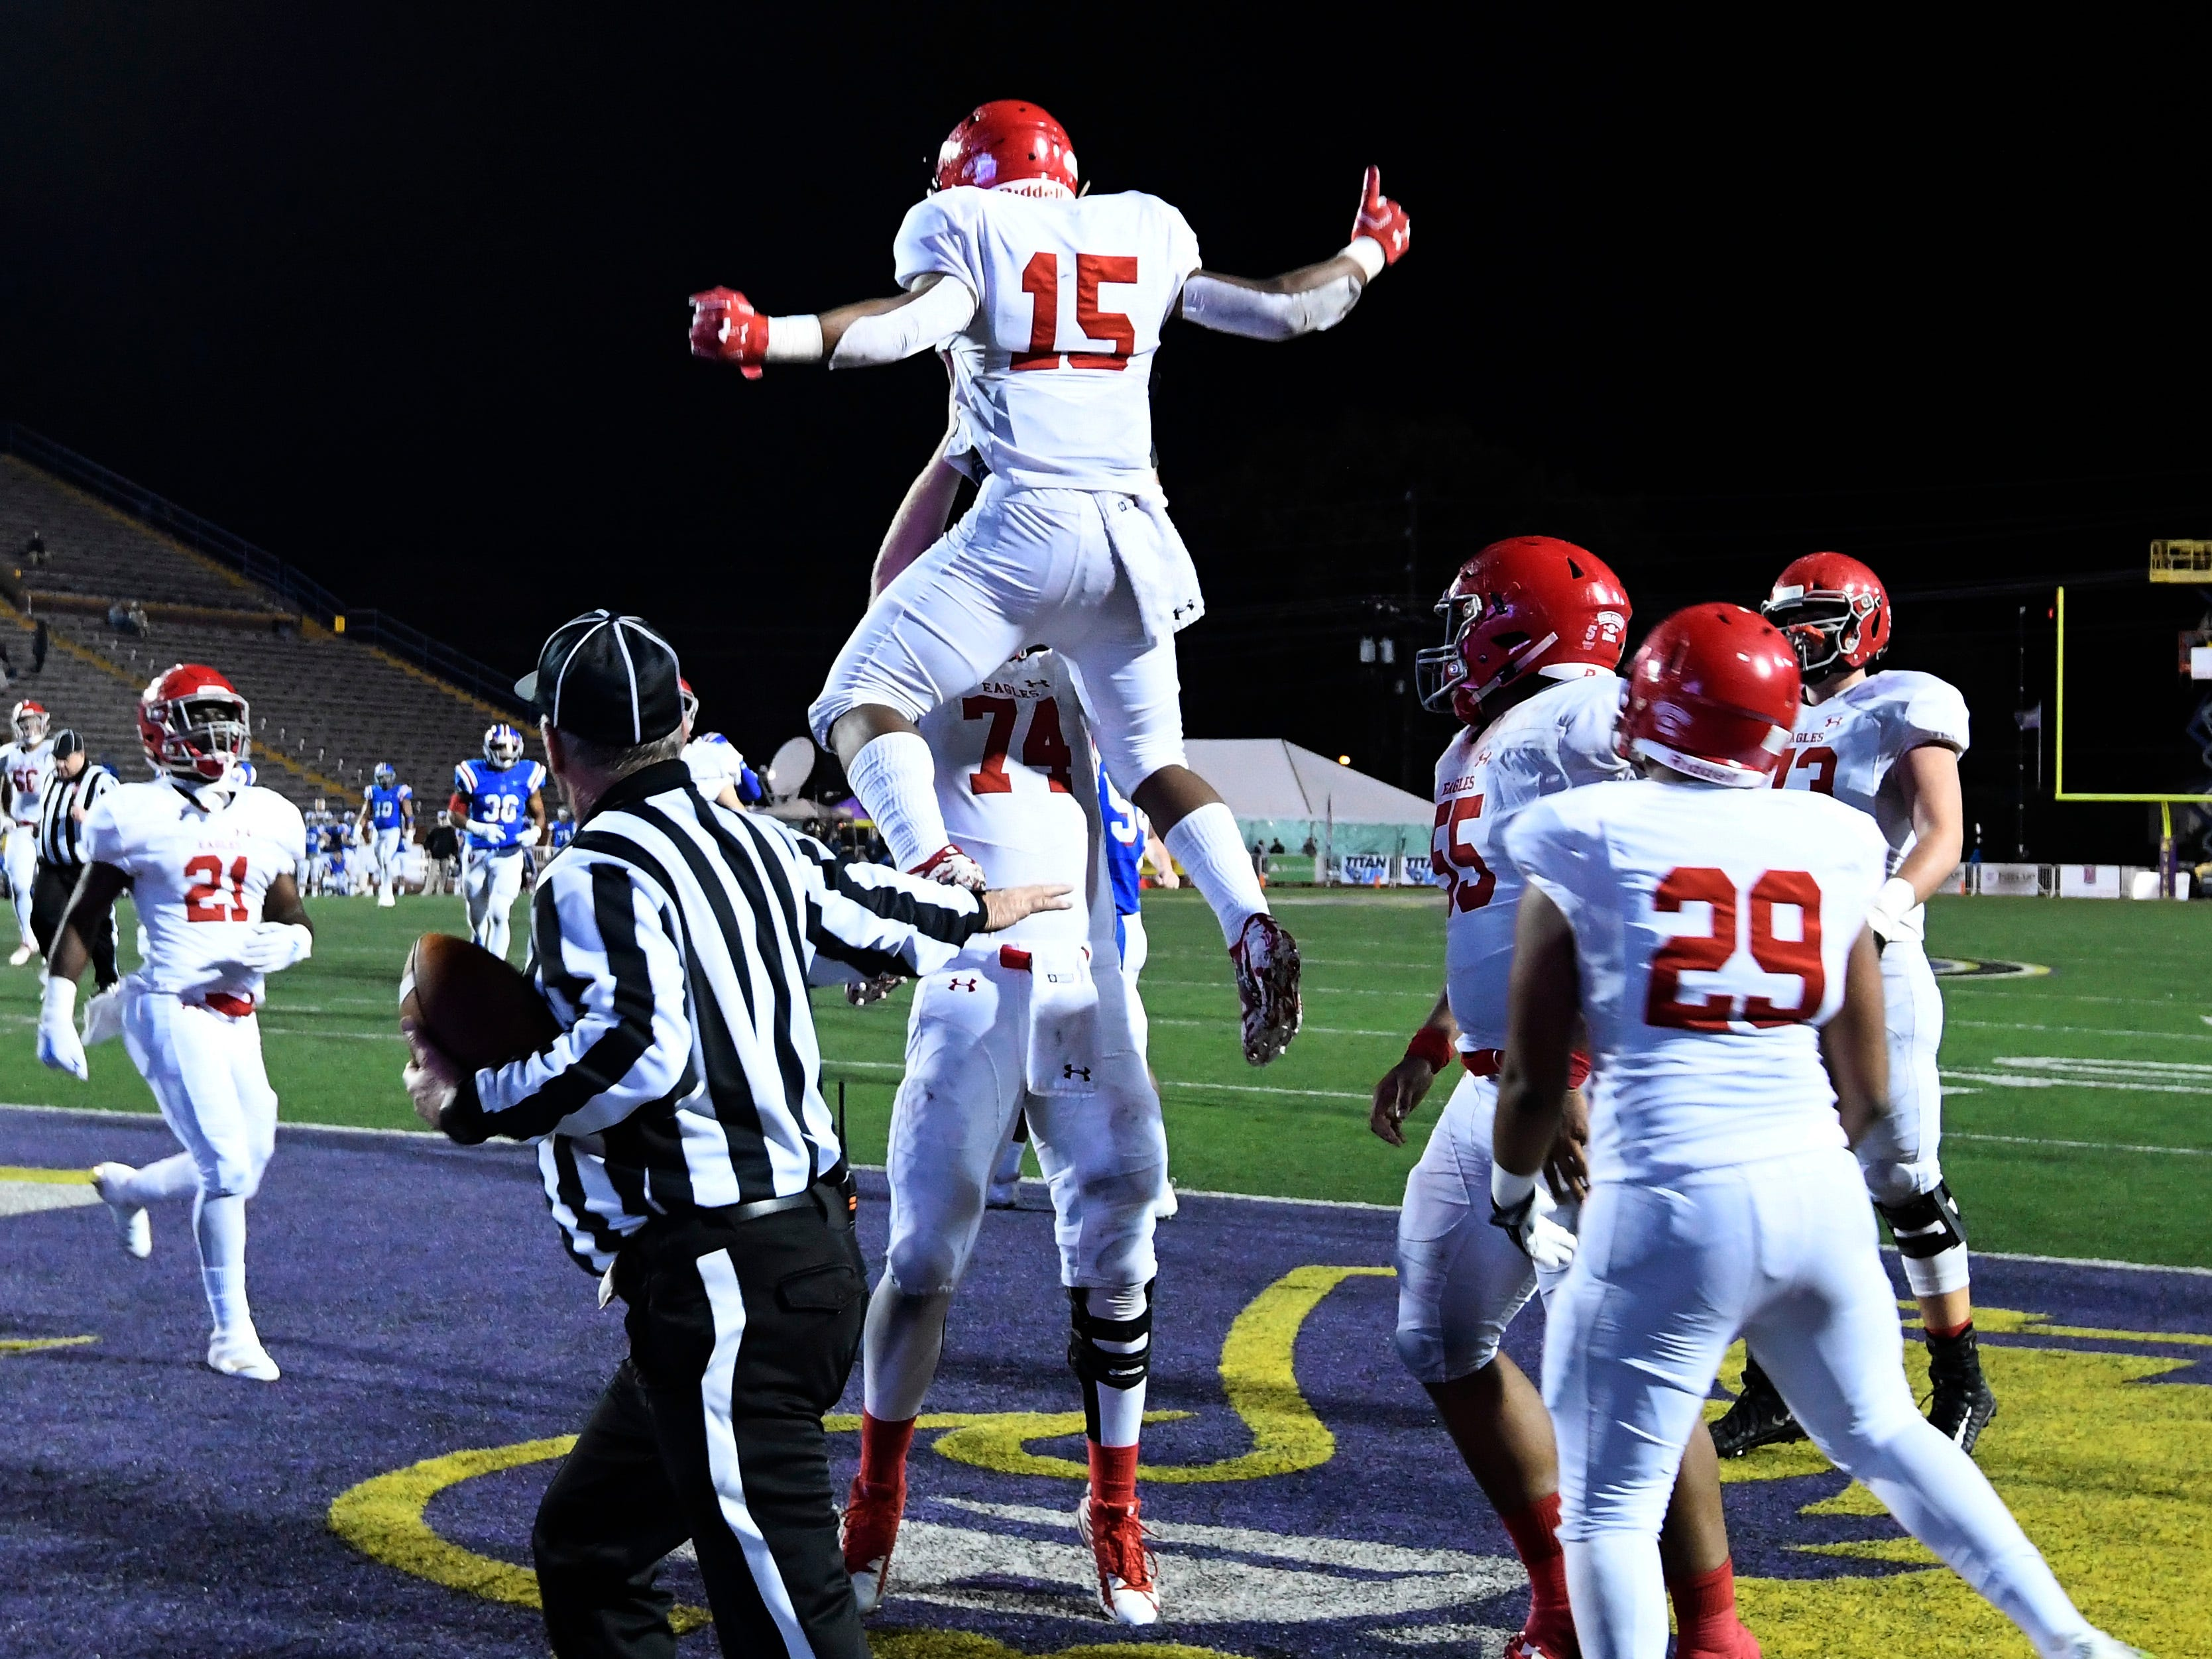 Brentwood Acad. running back Jordan James (15) celebrates his touchdown in the second quarter at the Division II-AAA BlueCross Bowl state championship at Tennessee Tech's Tucker Stadium in Cookeville, Tenn., on Friday, Nov. 30, 2018.